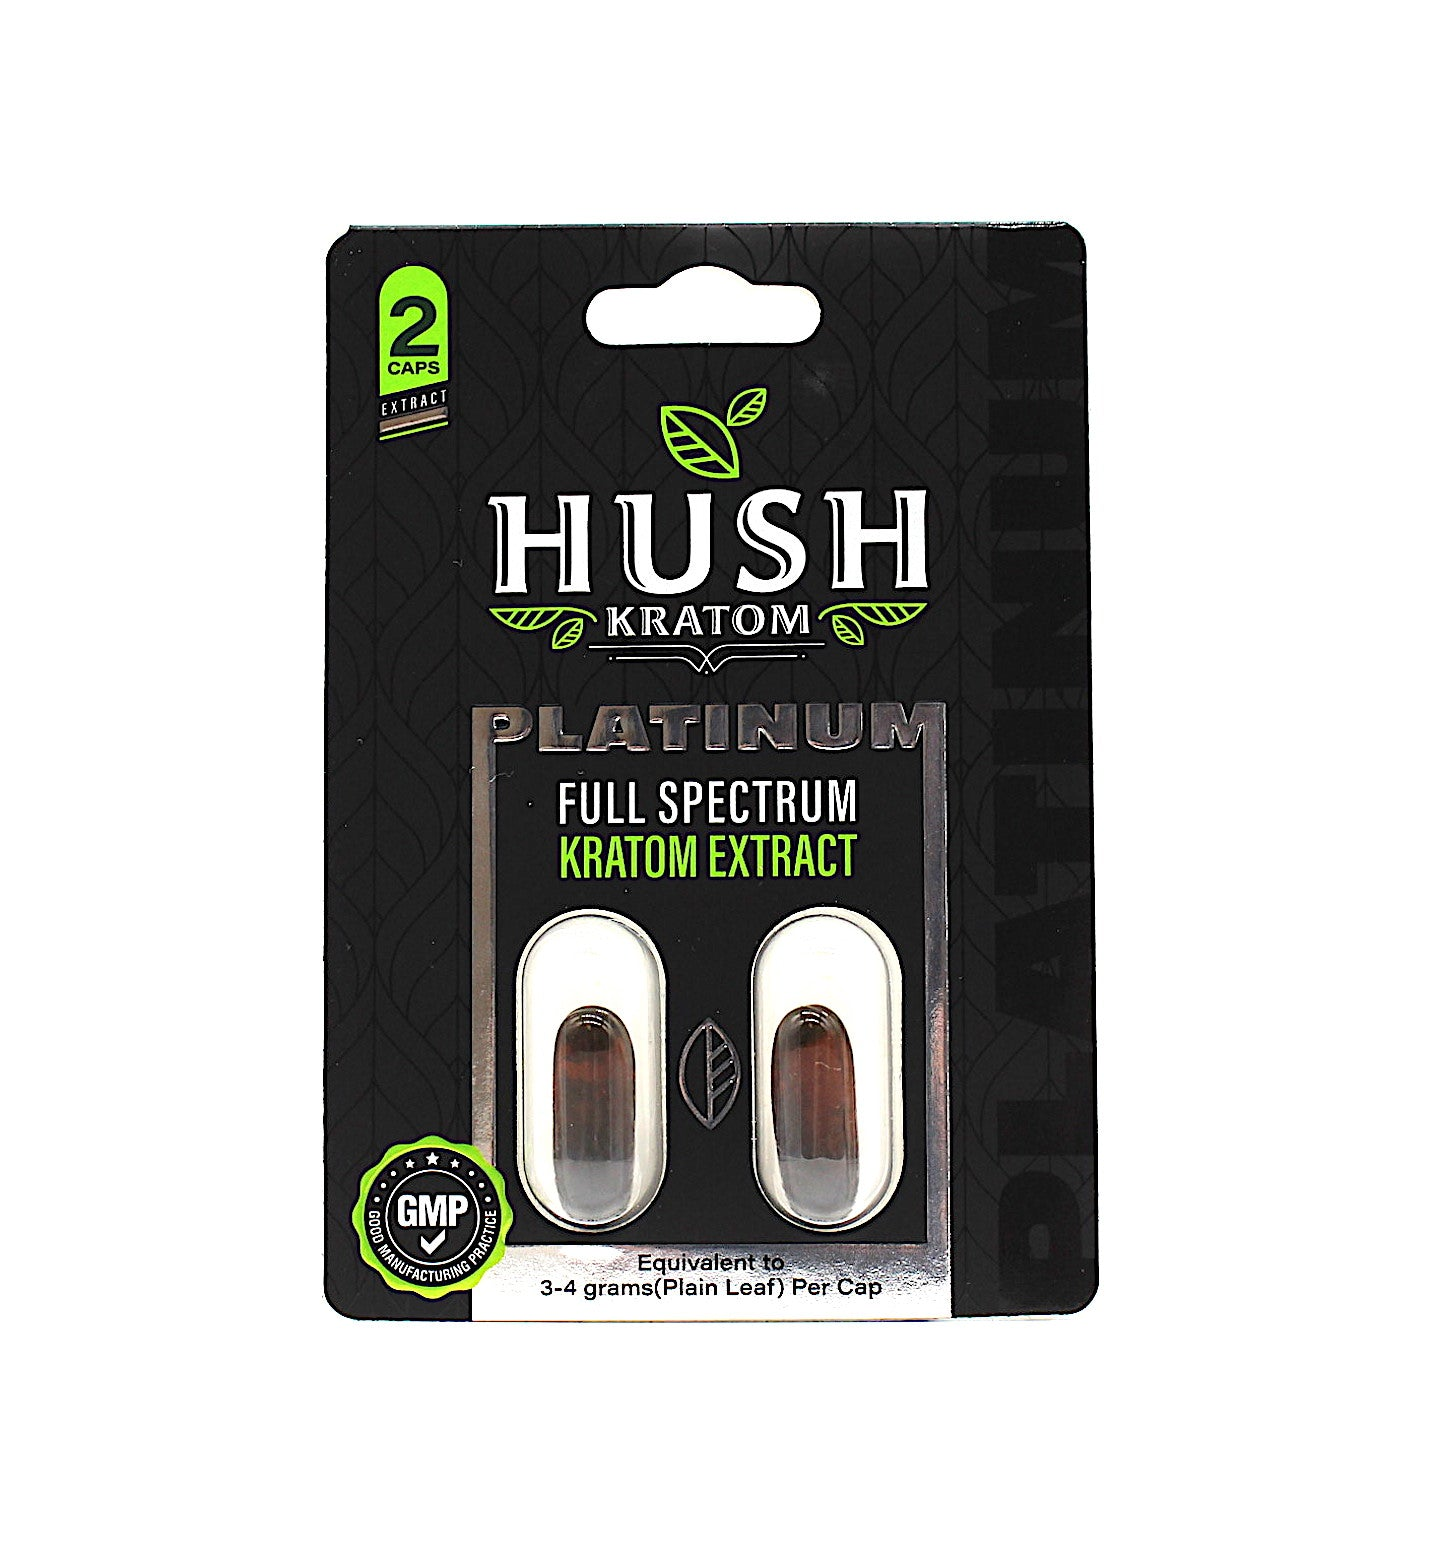 Hush- Platinum Full Spectrum Kratom Extract Gel Capsules ( 2CT. per pack )